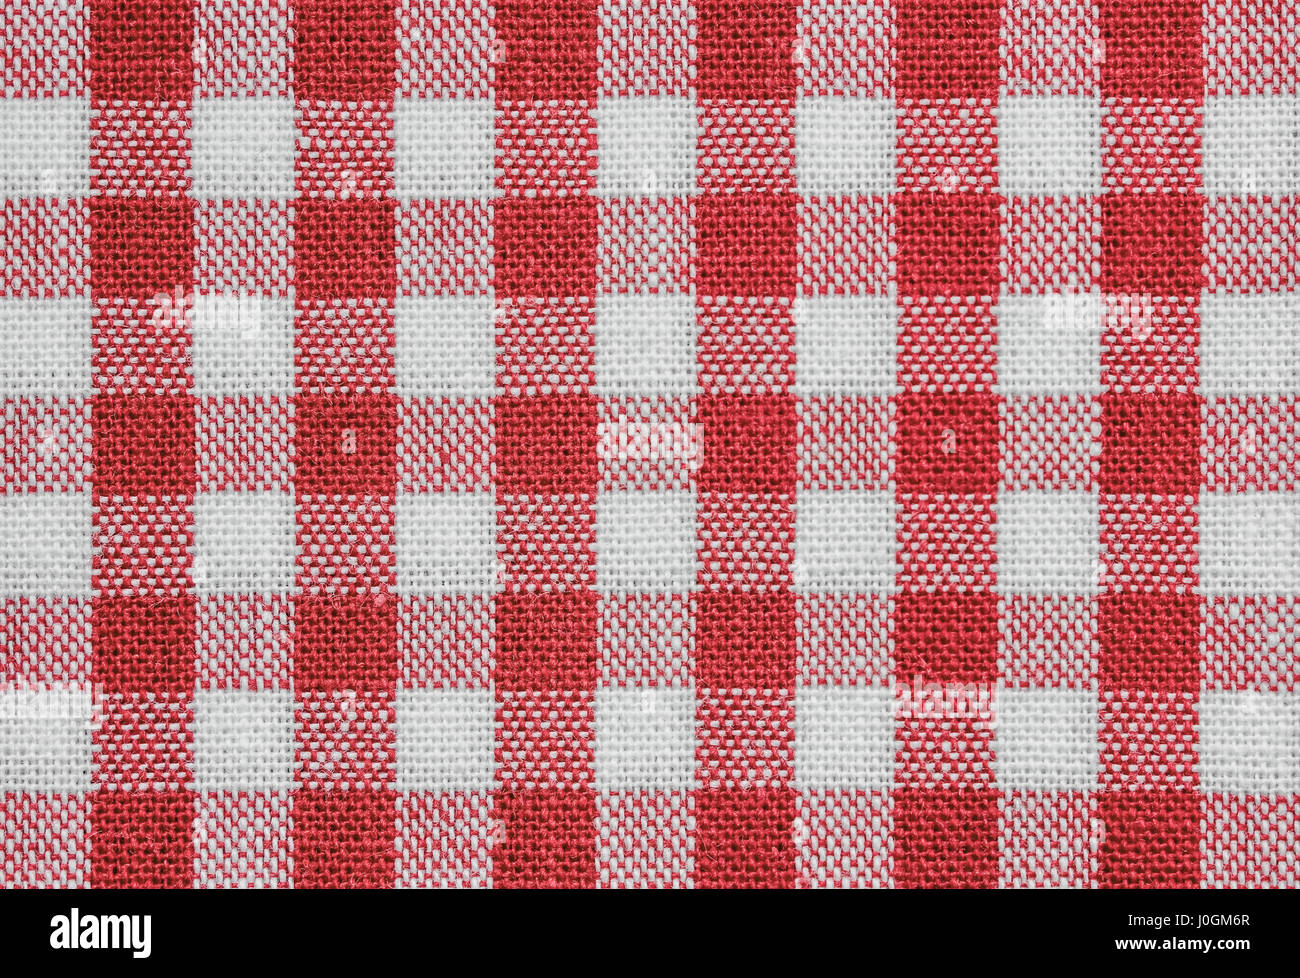 Background Of Red And White Checkered Tablecloth Fabric